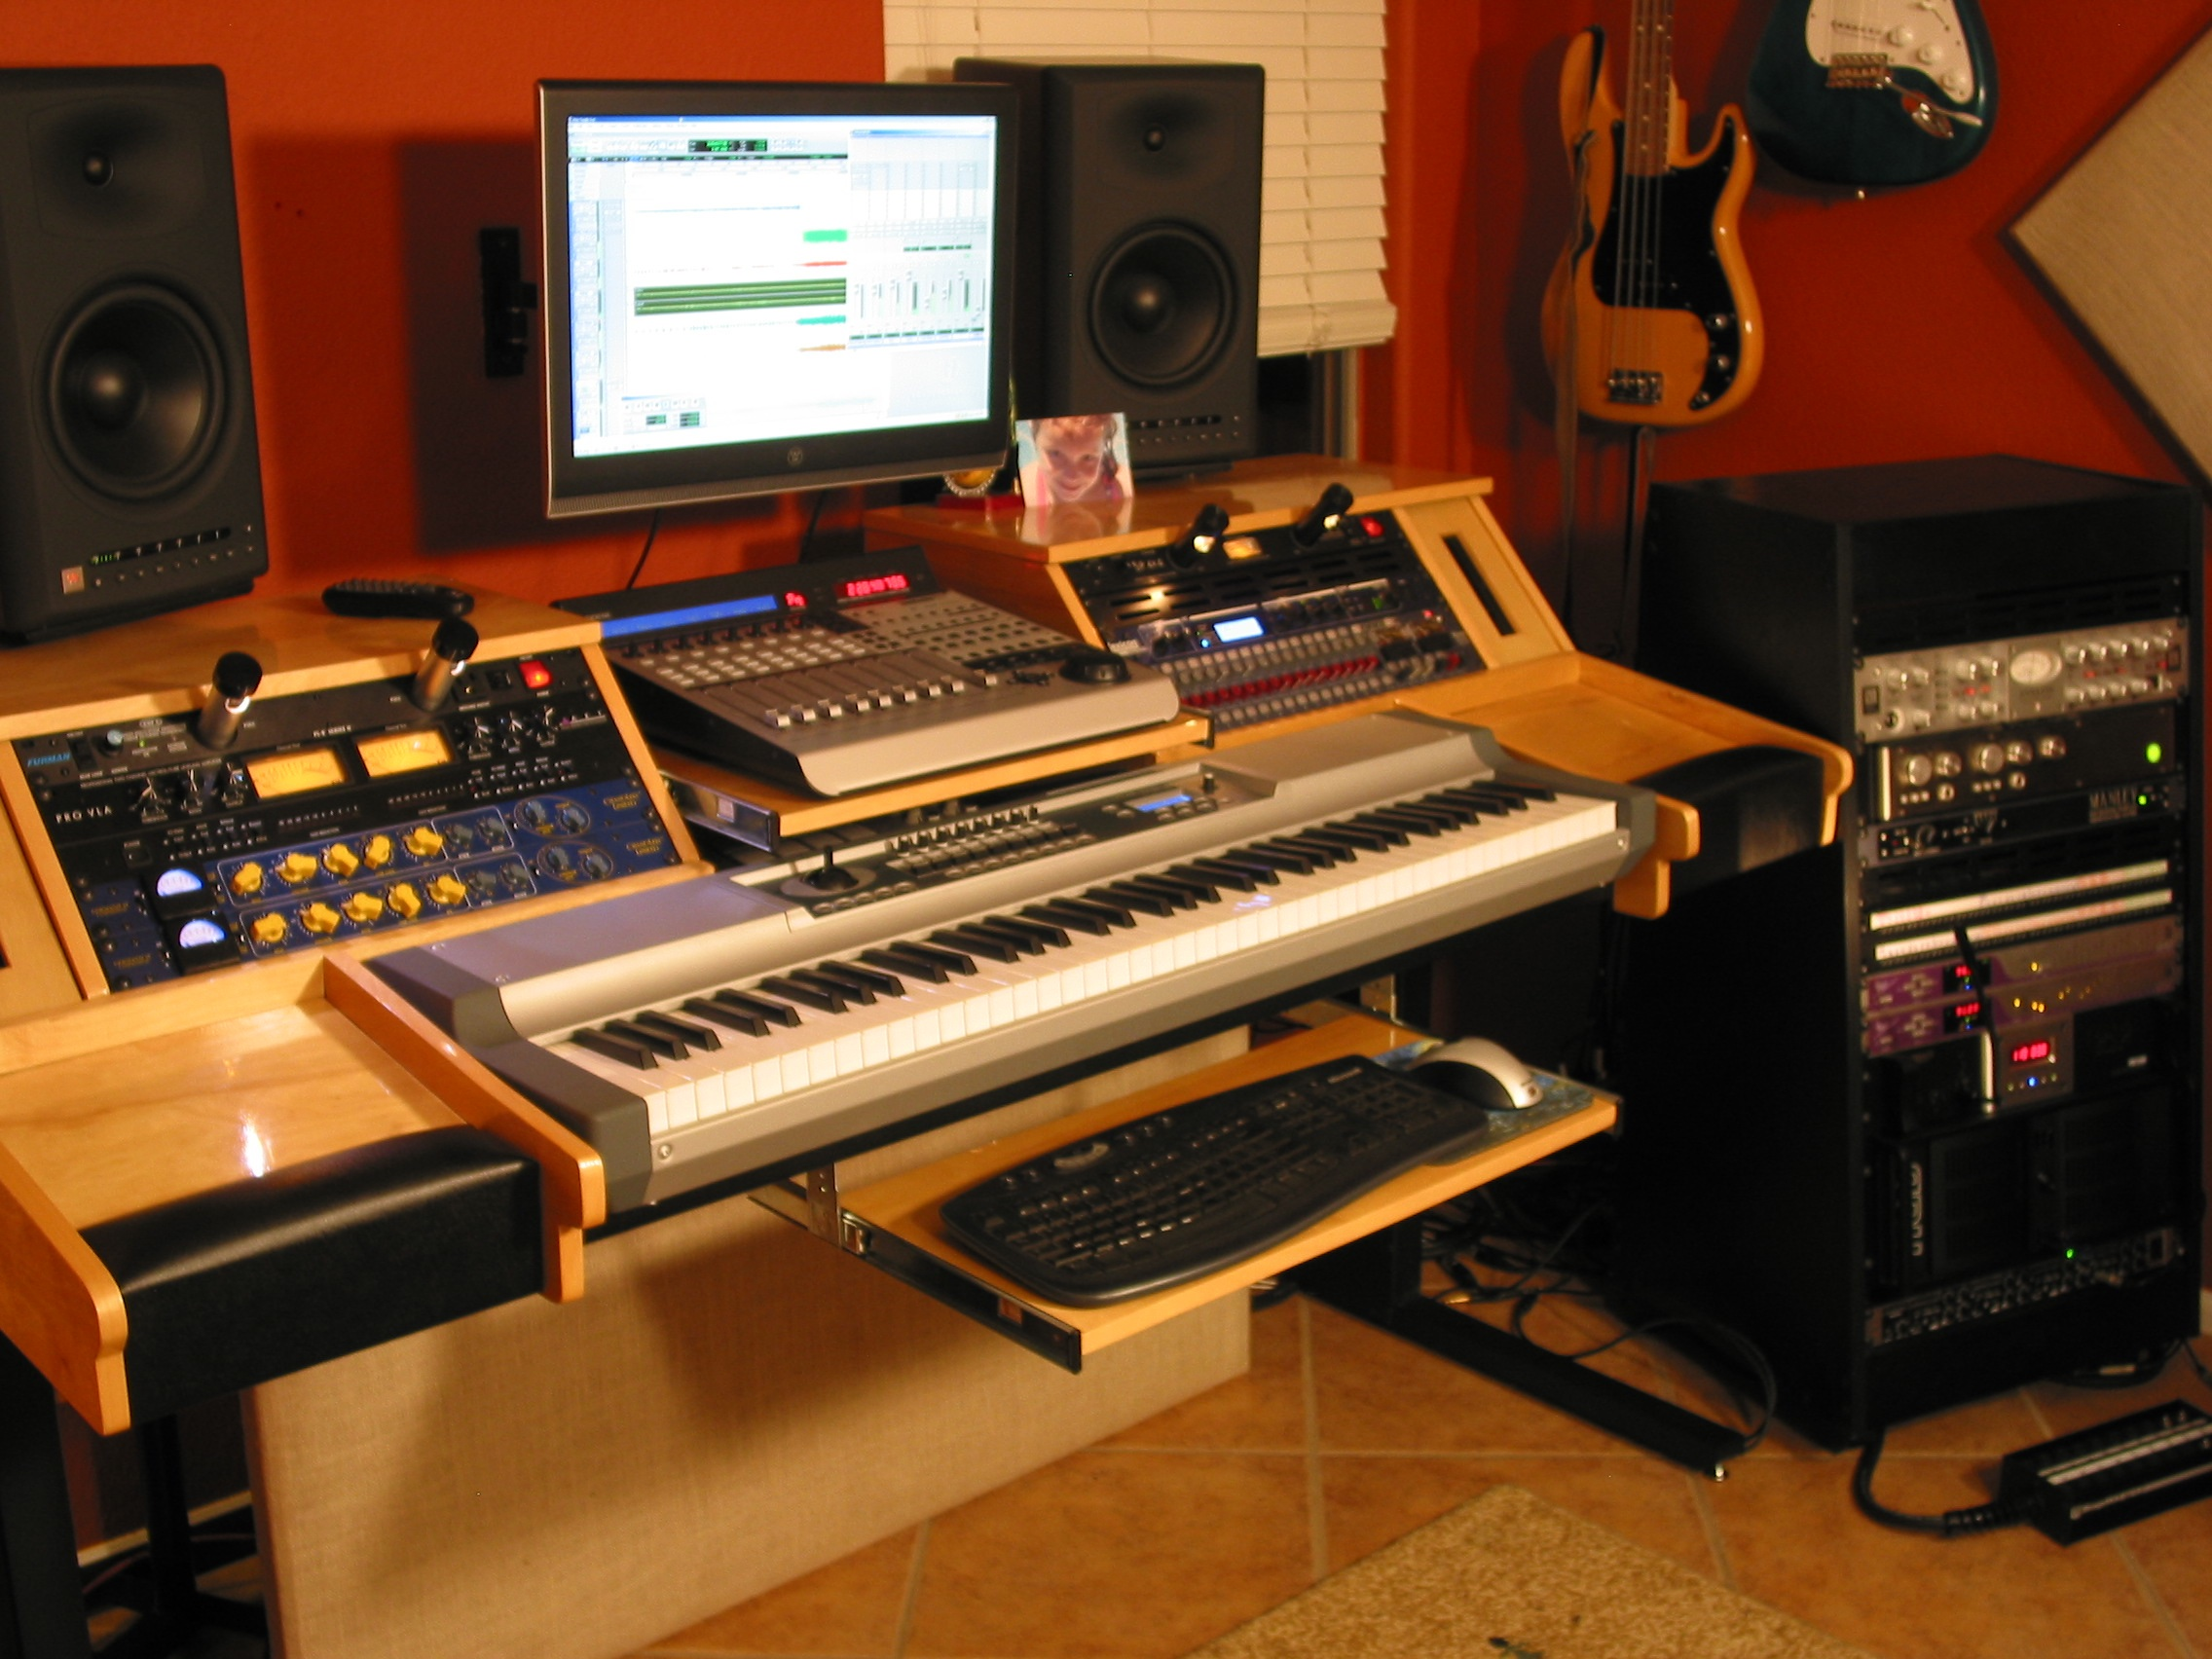 Desks and studio furniture  Best bets  Gearslutz Pro Audio Community